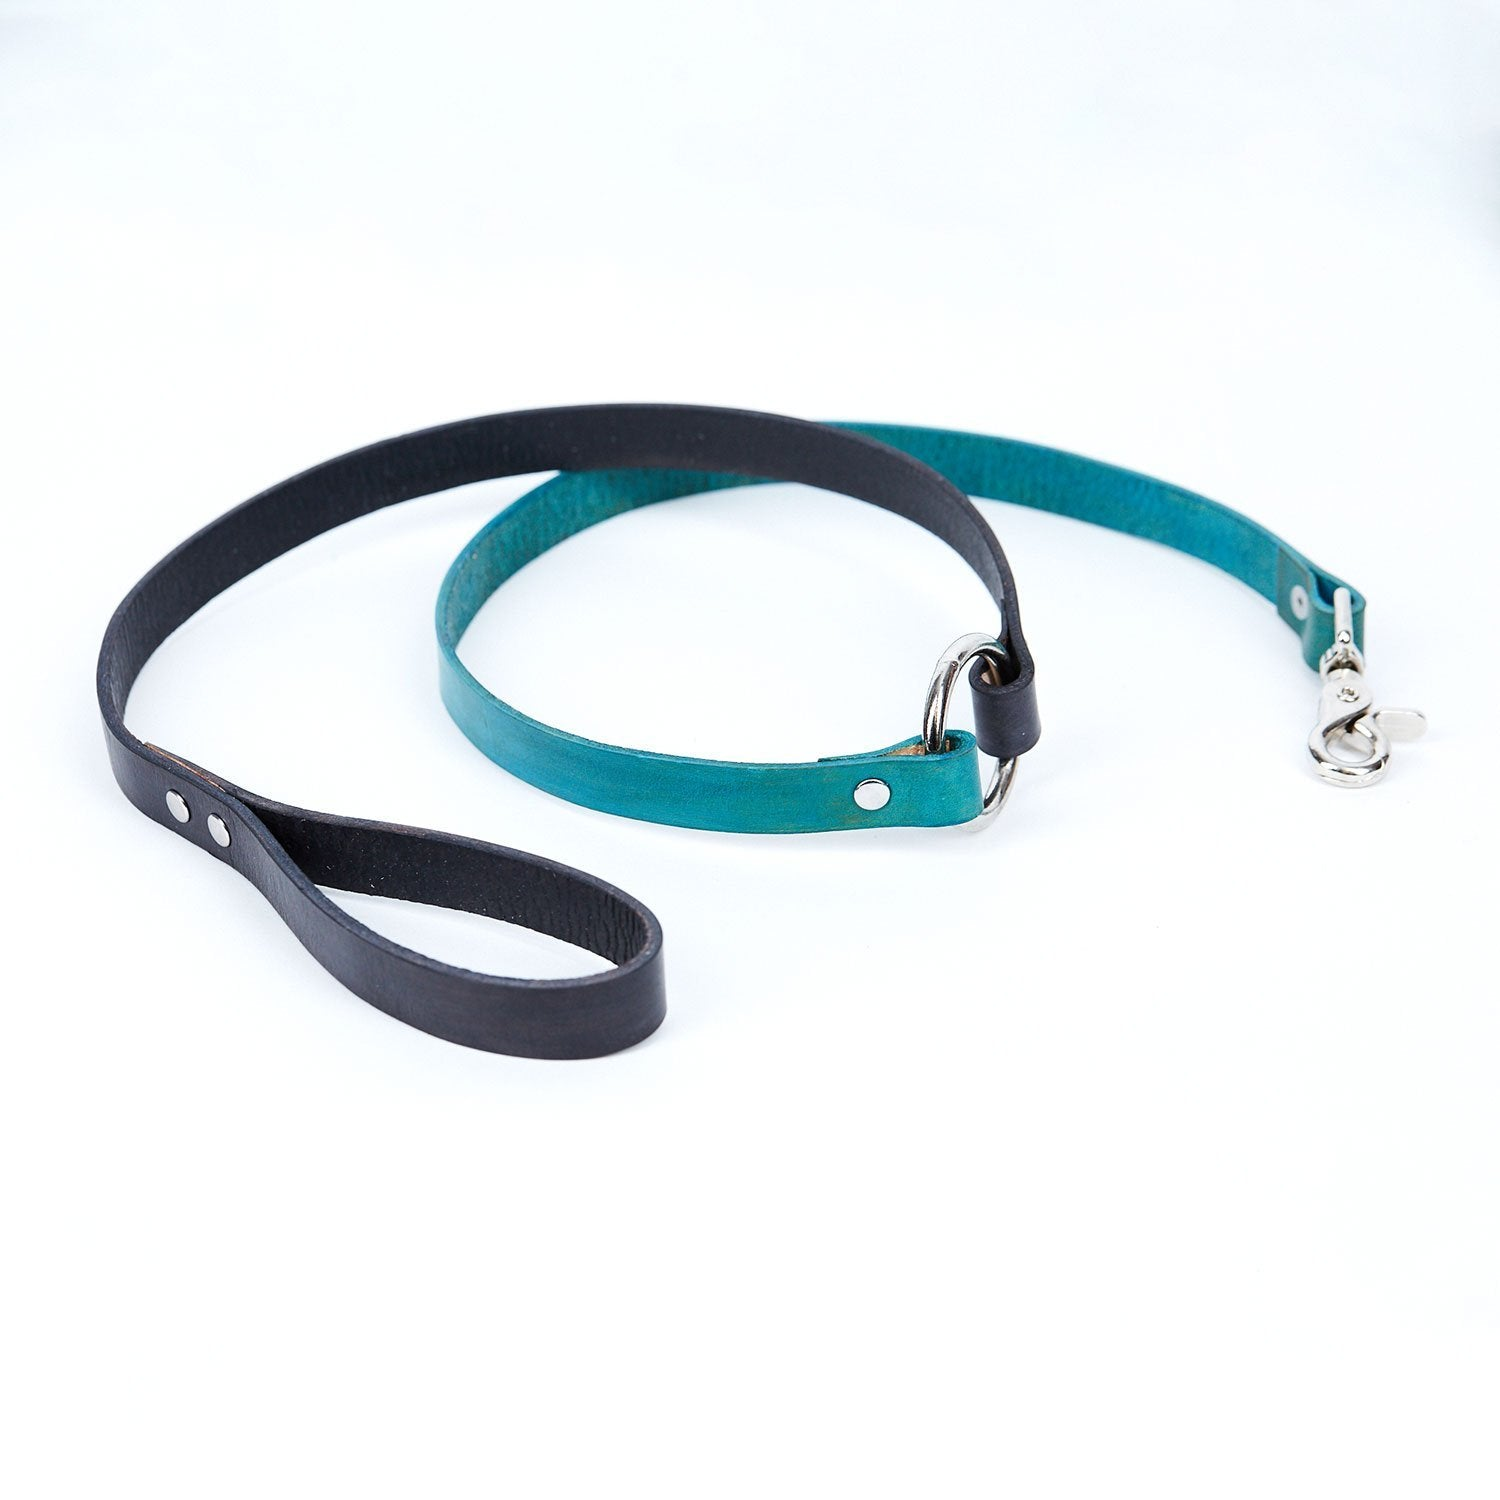 Large Leather Dog Leash - Available in More Colors